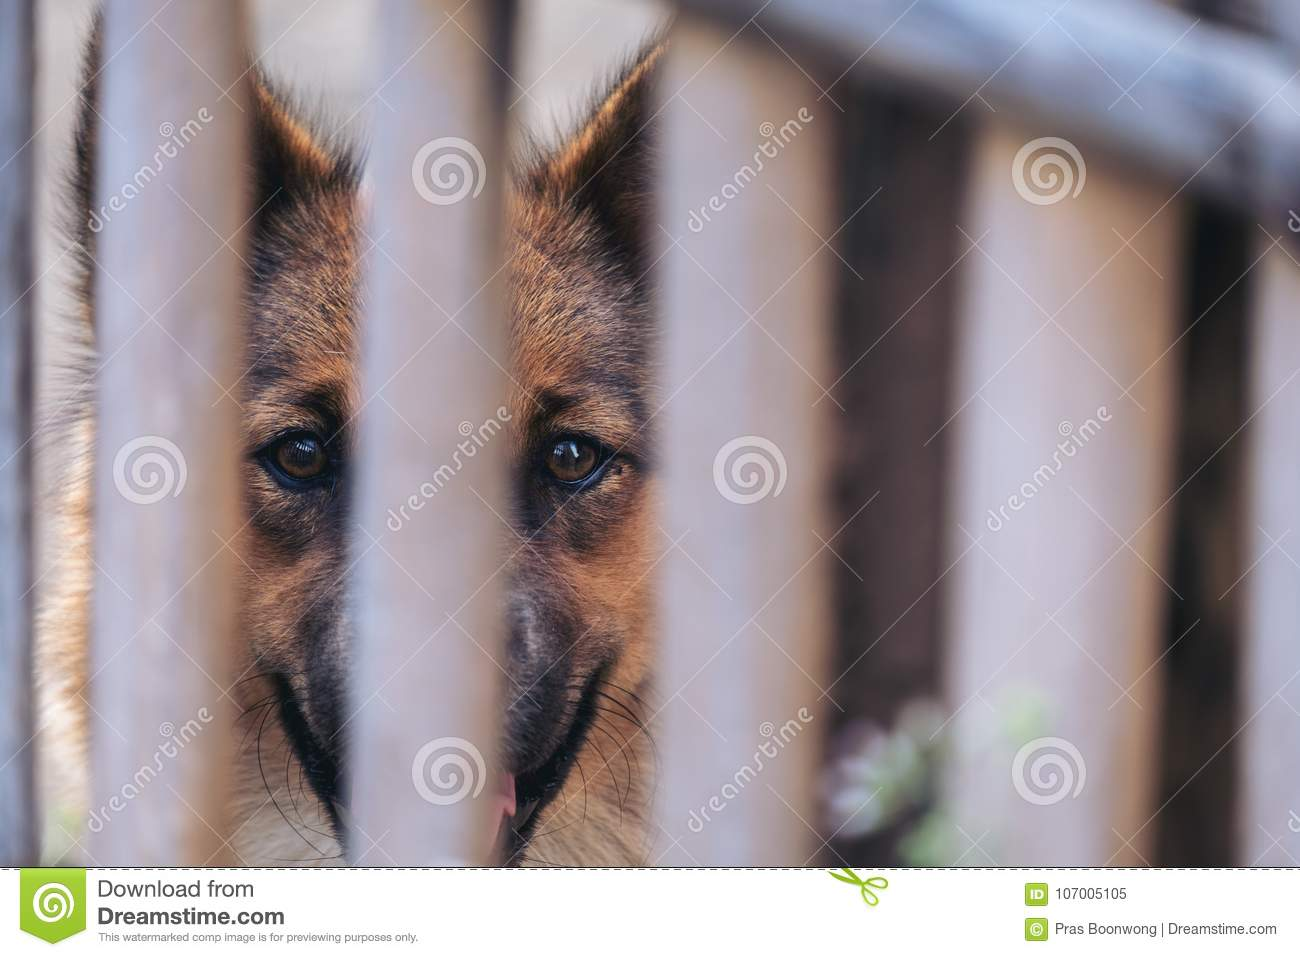 Closeup image of a black and brown Thai dog in a wooden cage